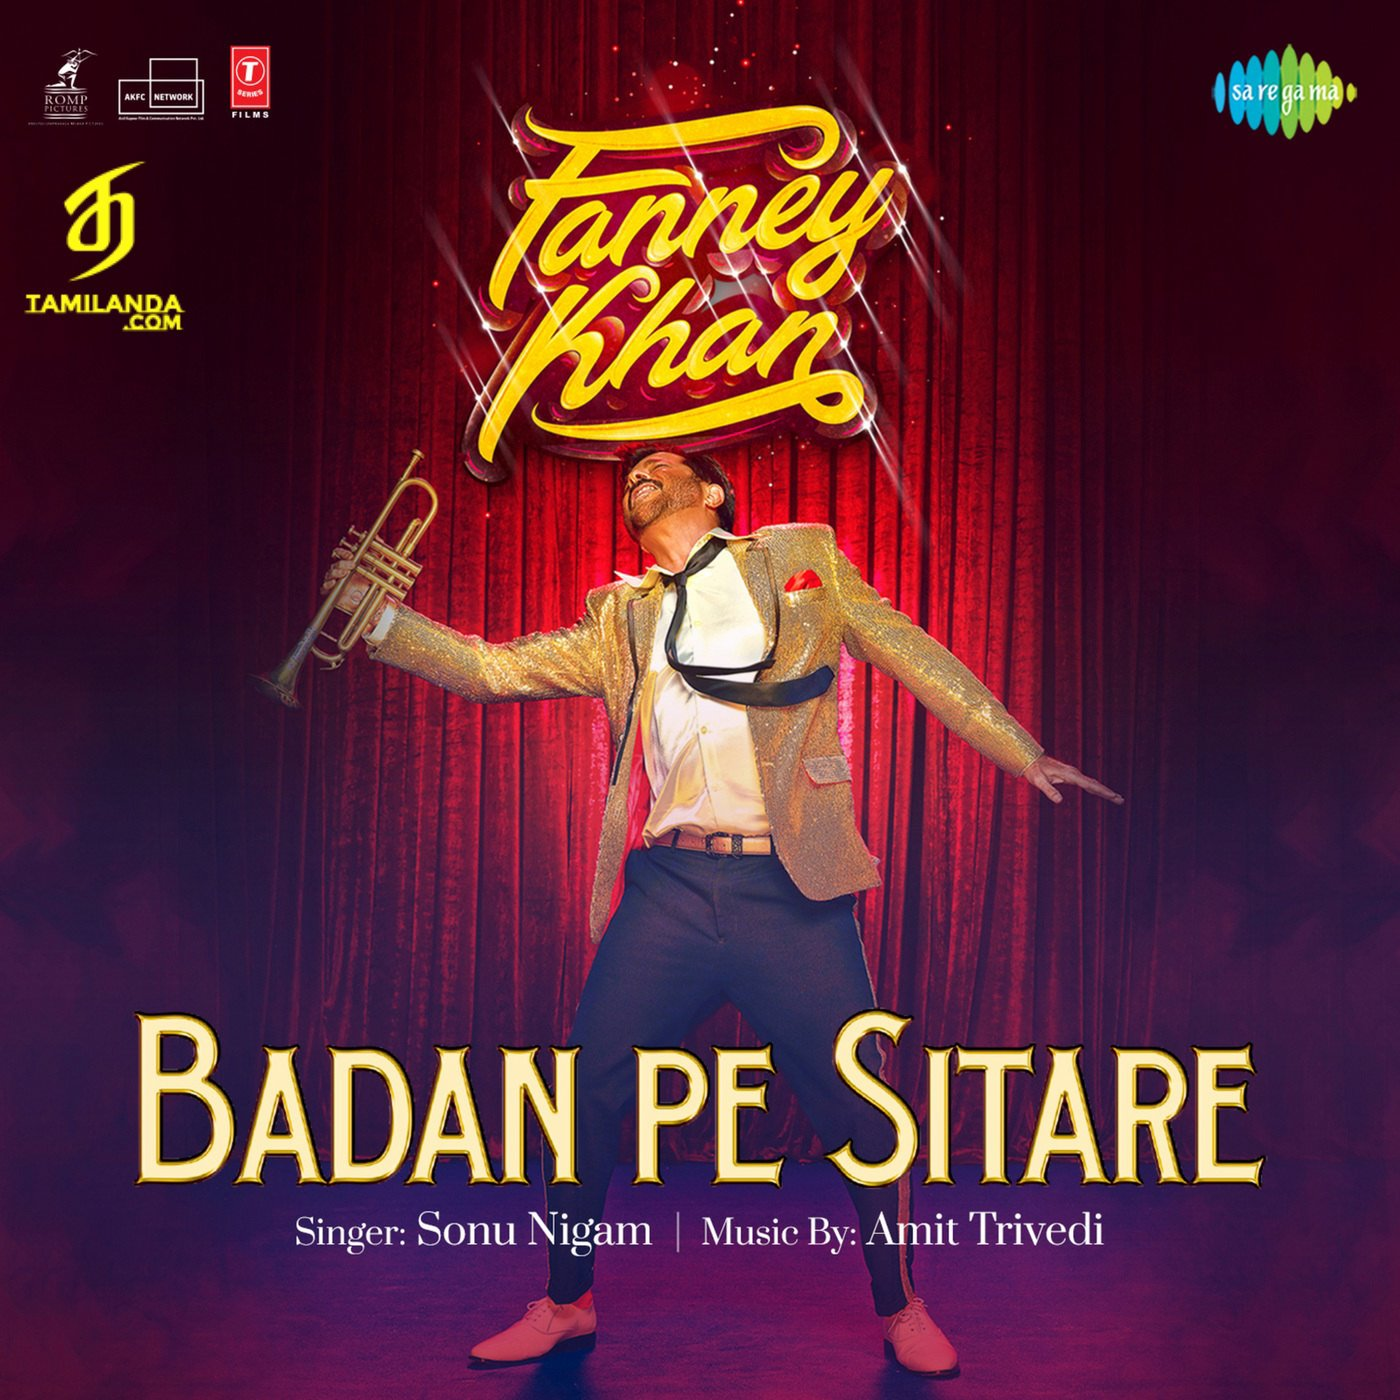 Badan Pe Sitare – Fanney Khan (Single) FLAC Song